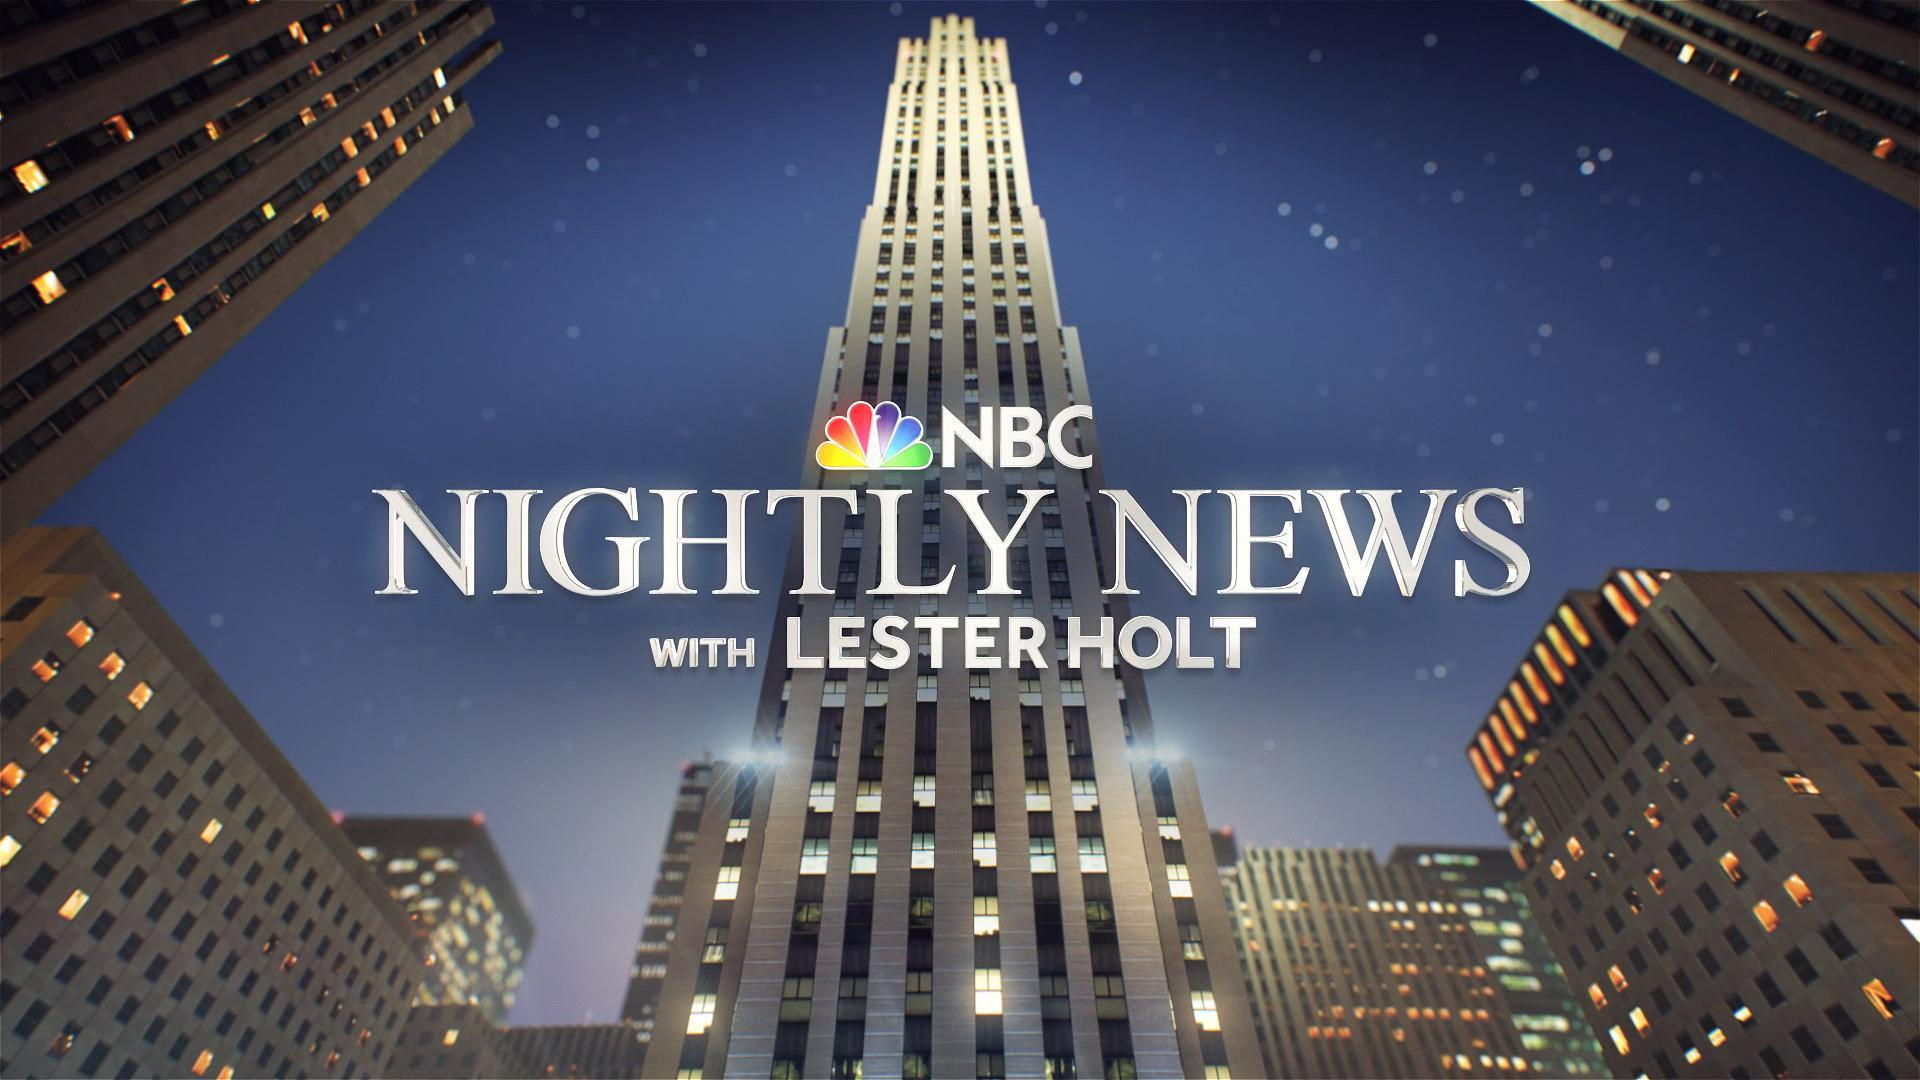 NBC Nightly News New Graphic Open